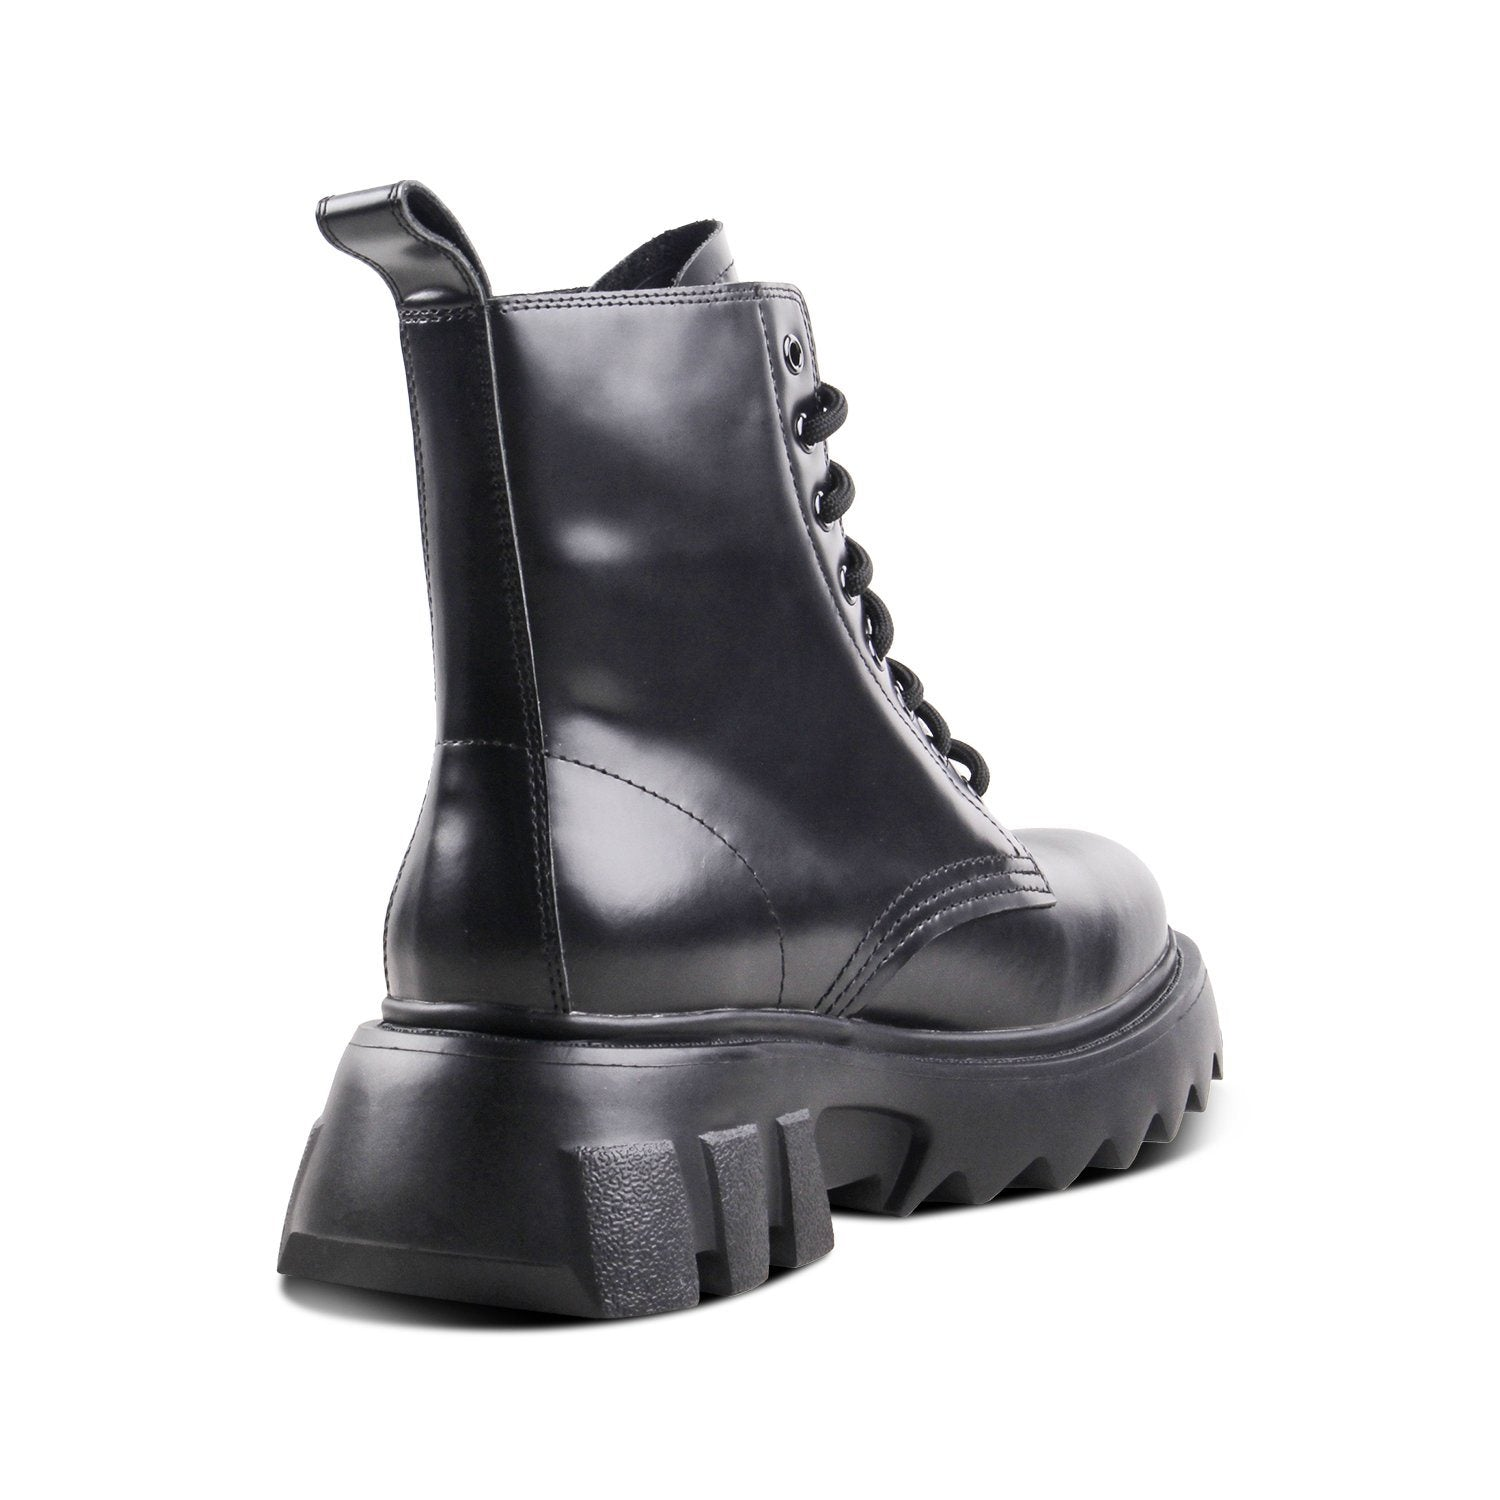 Soulsfeng Women Leather Boots Black - Soulsfeng